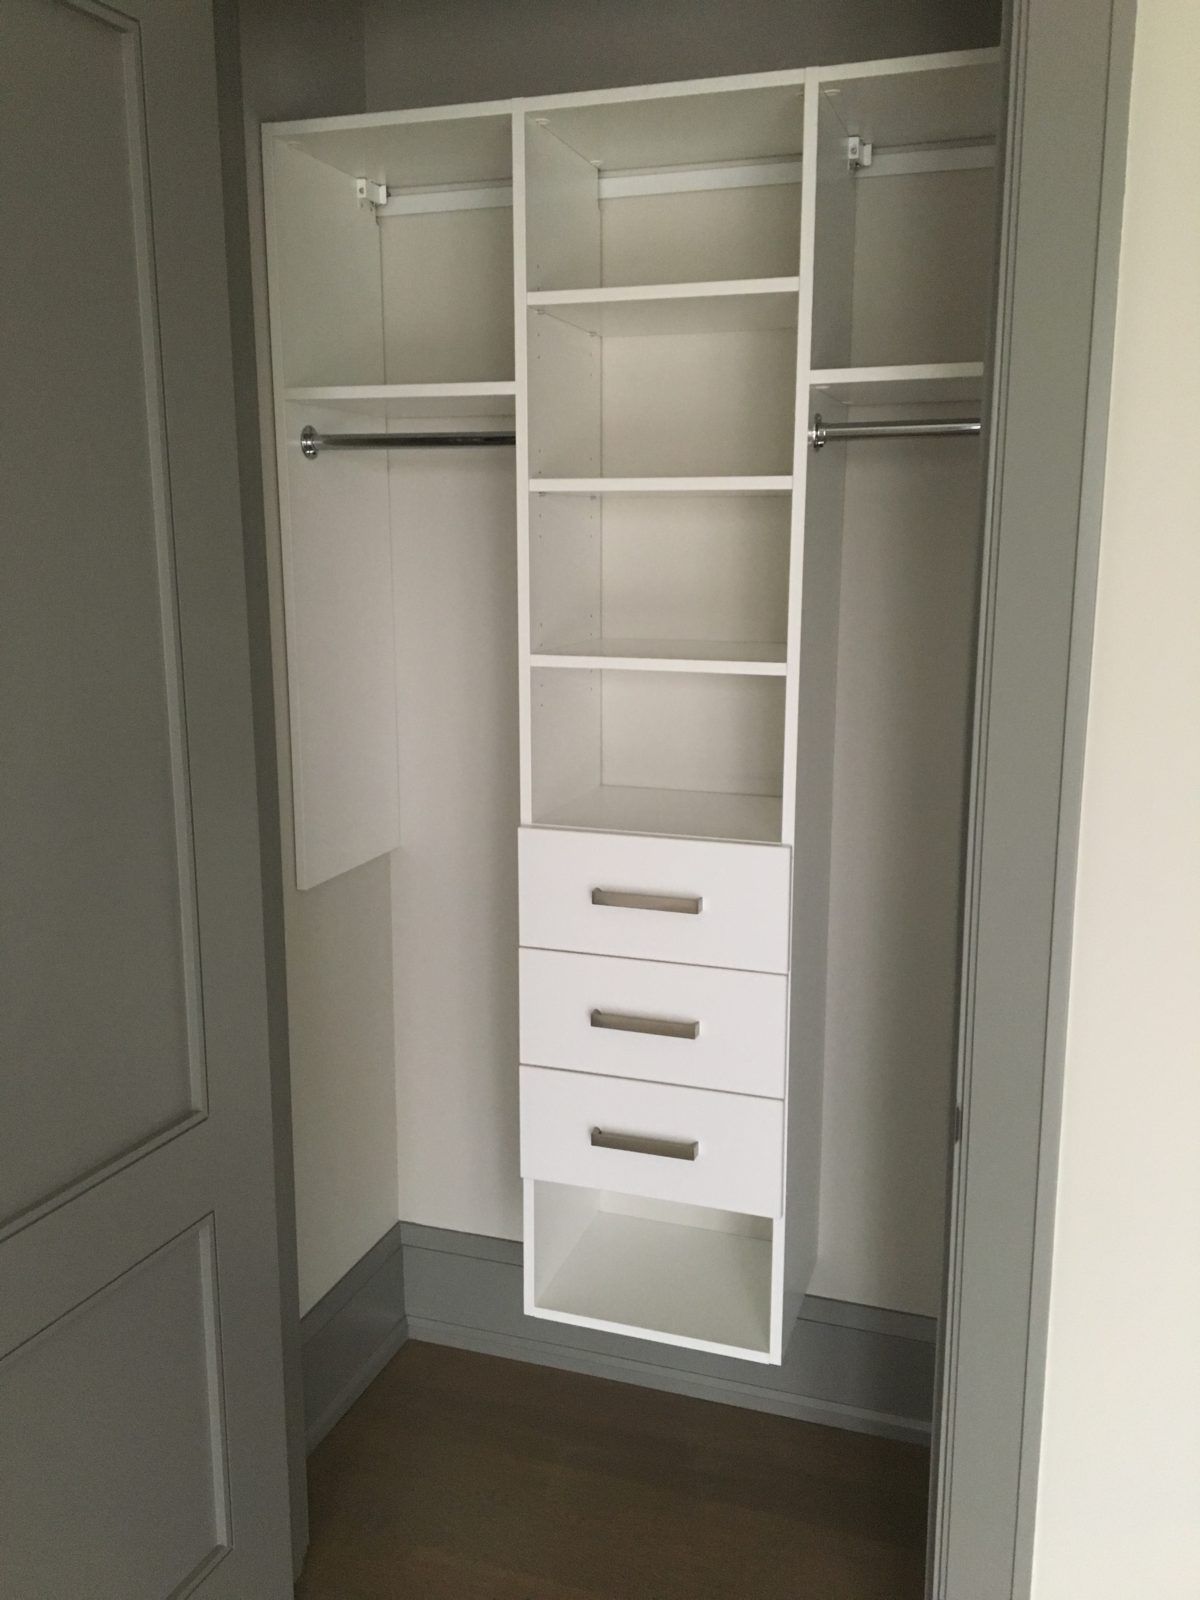 you sets it closet pin for up inserts makeroom the organizer gorgeous store from closets liveorganized tcs when professional all container especially